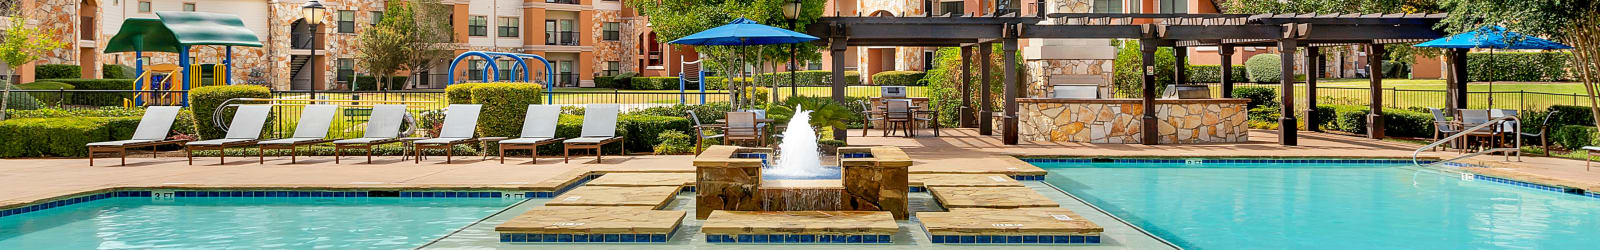 Amenities at Onion Creek Luxury Apartments in Austin, Texas